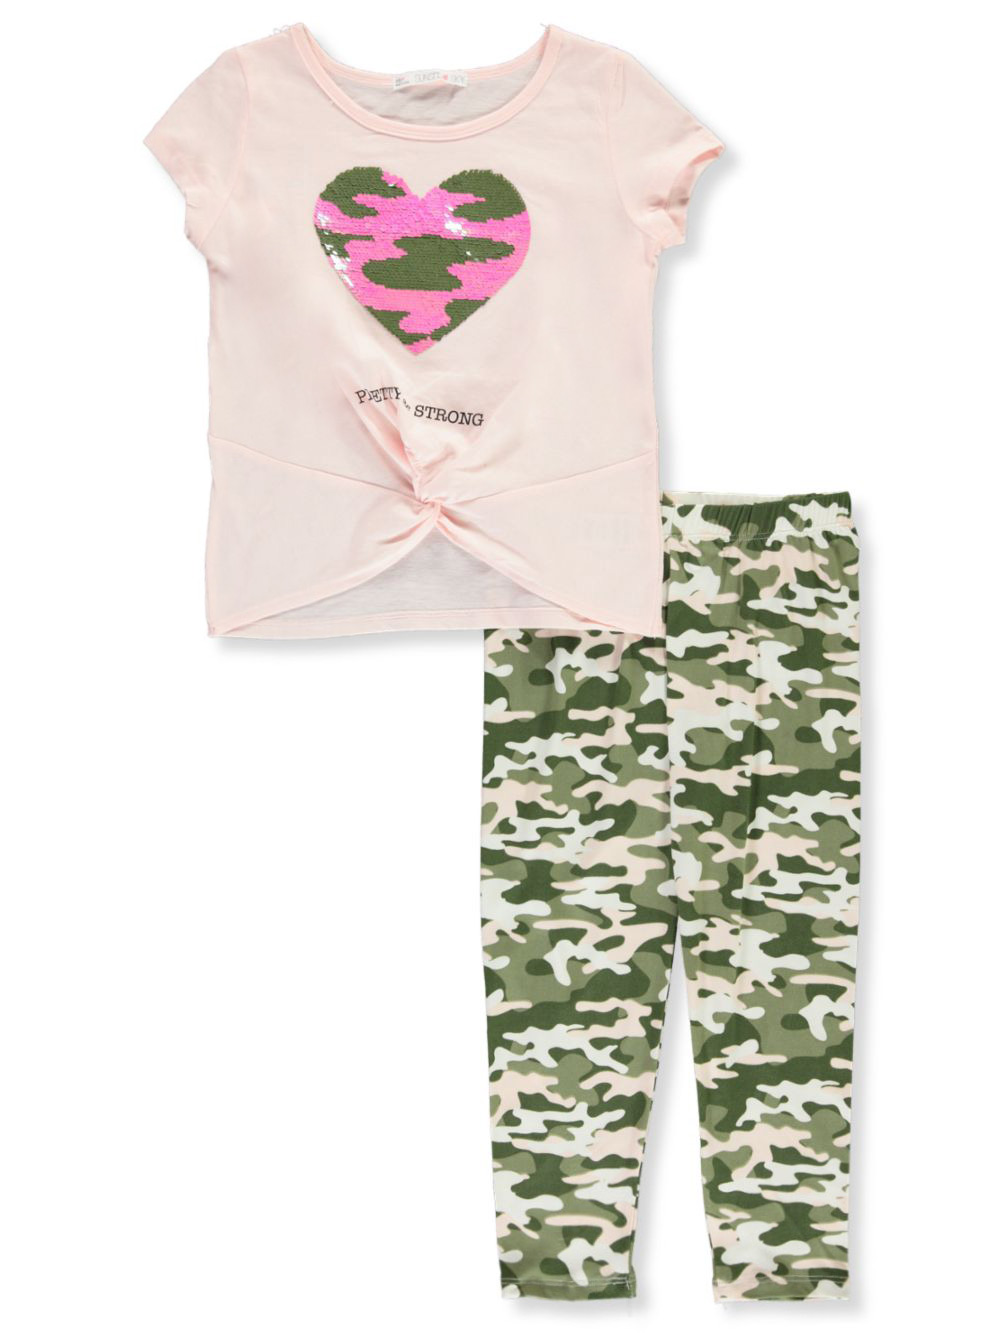 Leggings Floral  3D Hearts Size REDUCED Baby Girls 2 Piece Outfit Set T Shirt